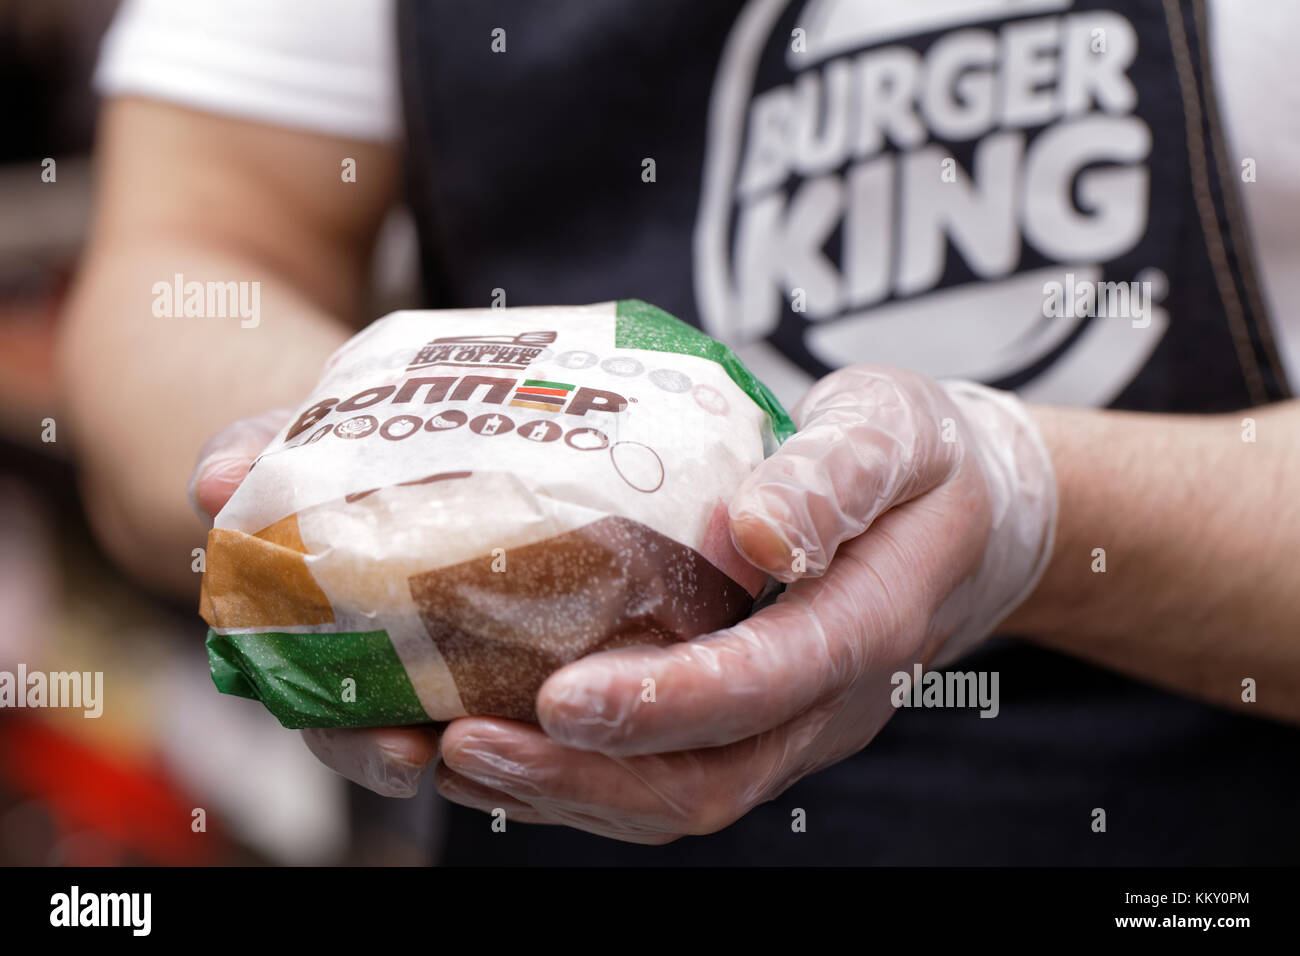 Burger King staff holding a Whopper in 500th restaurant in Russia in the day of opening - Stock Image